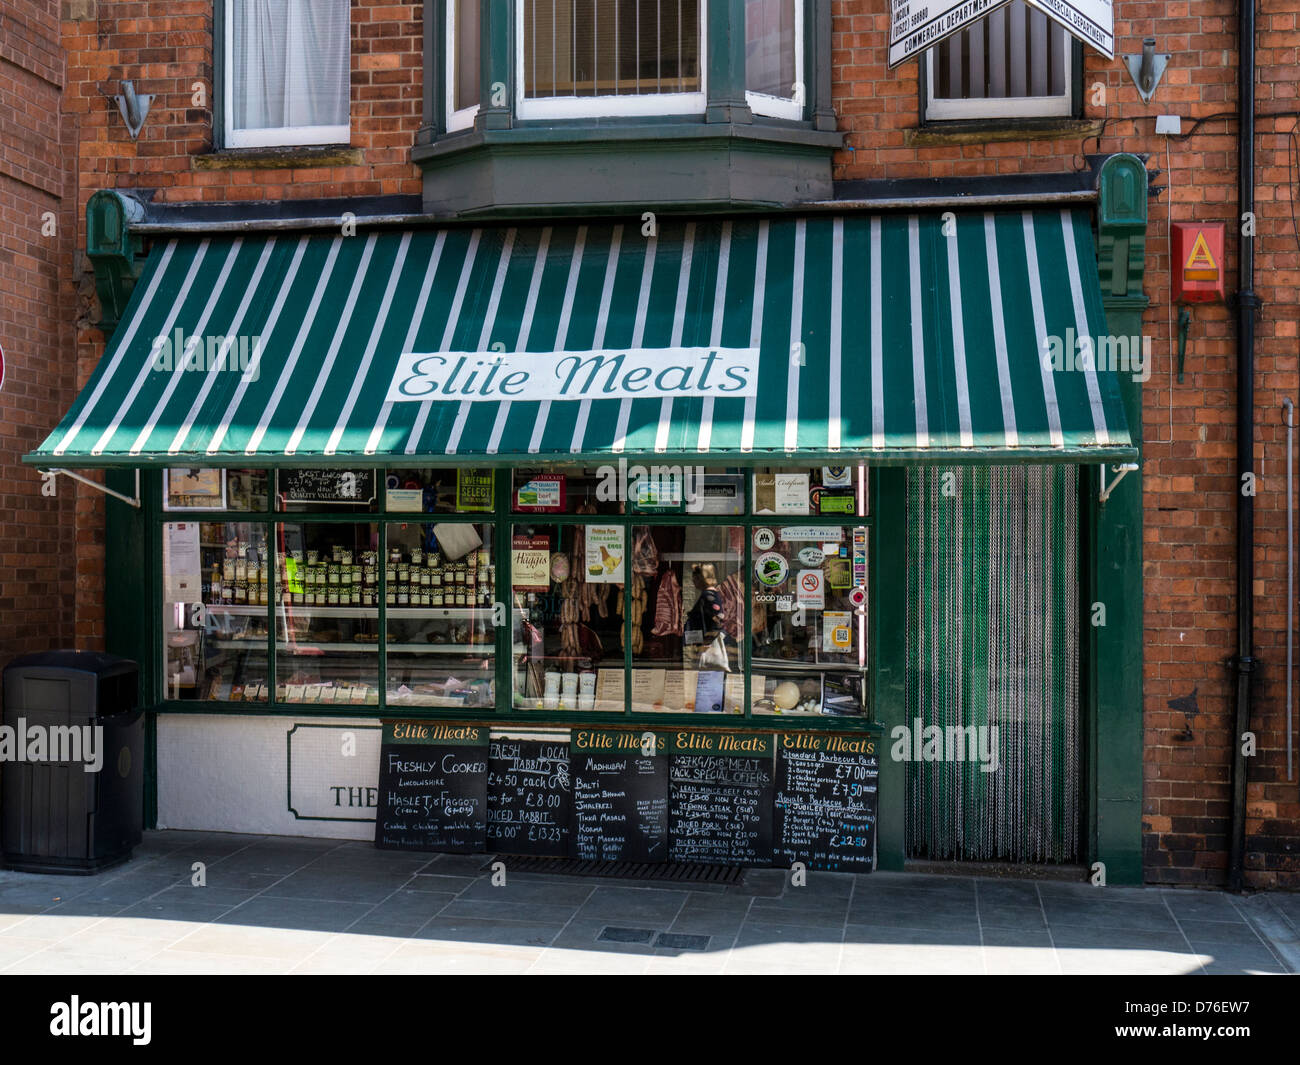 Traditional Butcher Shop in Bailgate, Lincoln - Stock Image